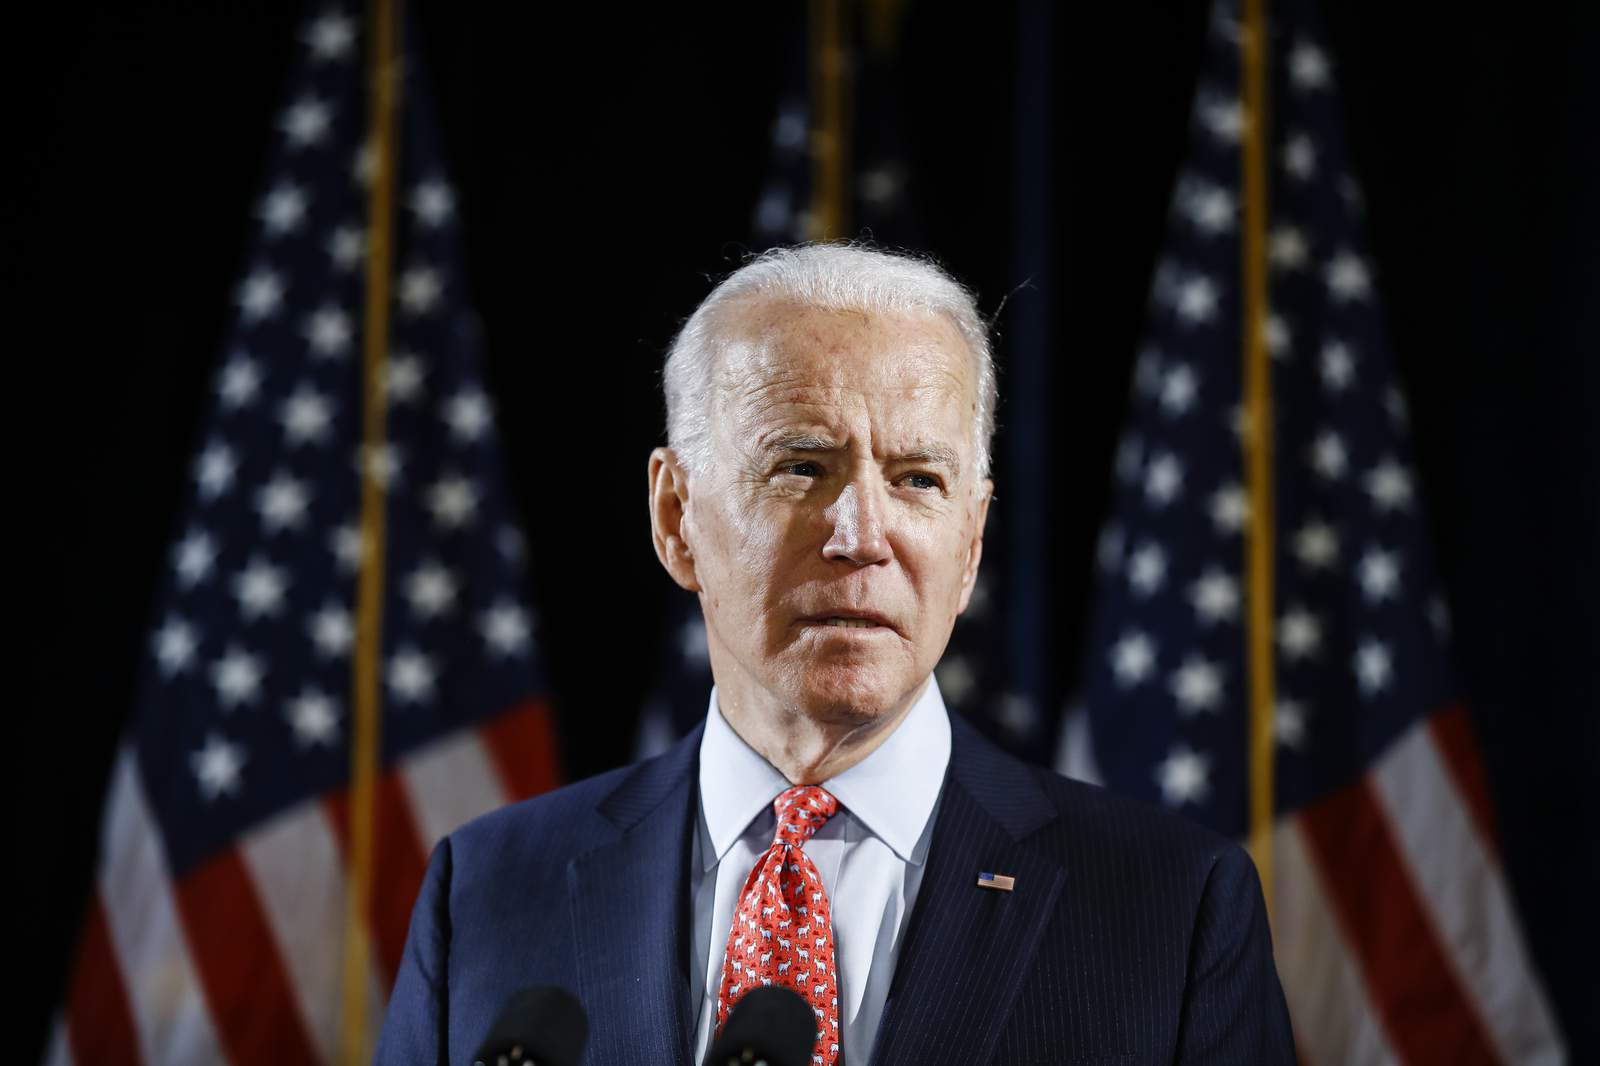 Biden Dems Aim To Expand Campaign Map With Fundraising Deal